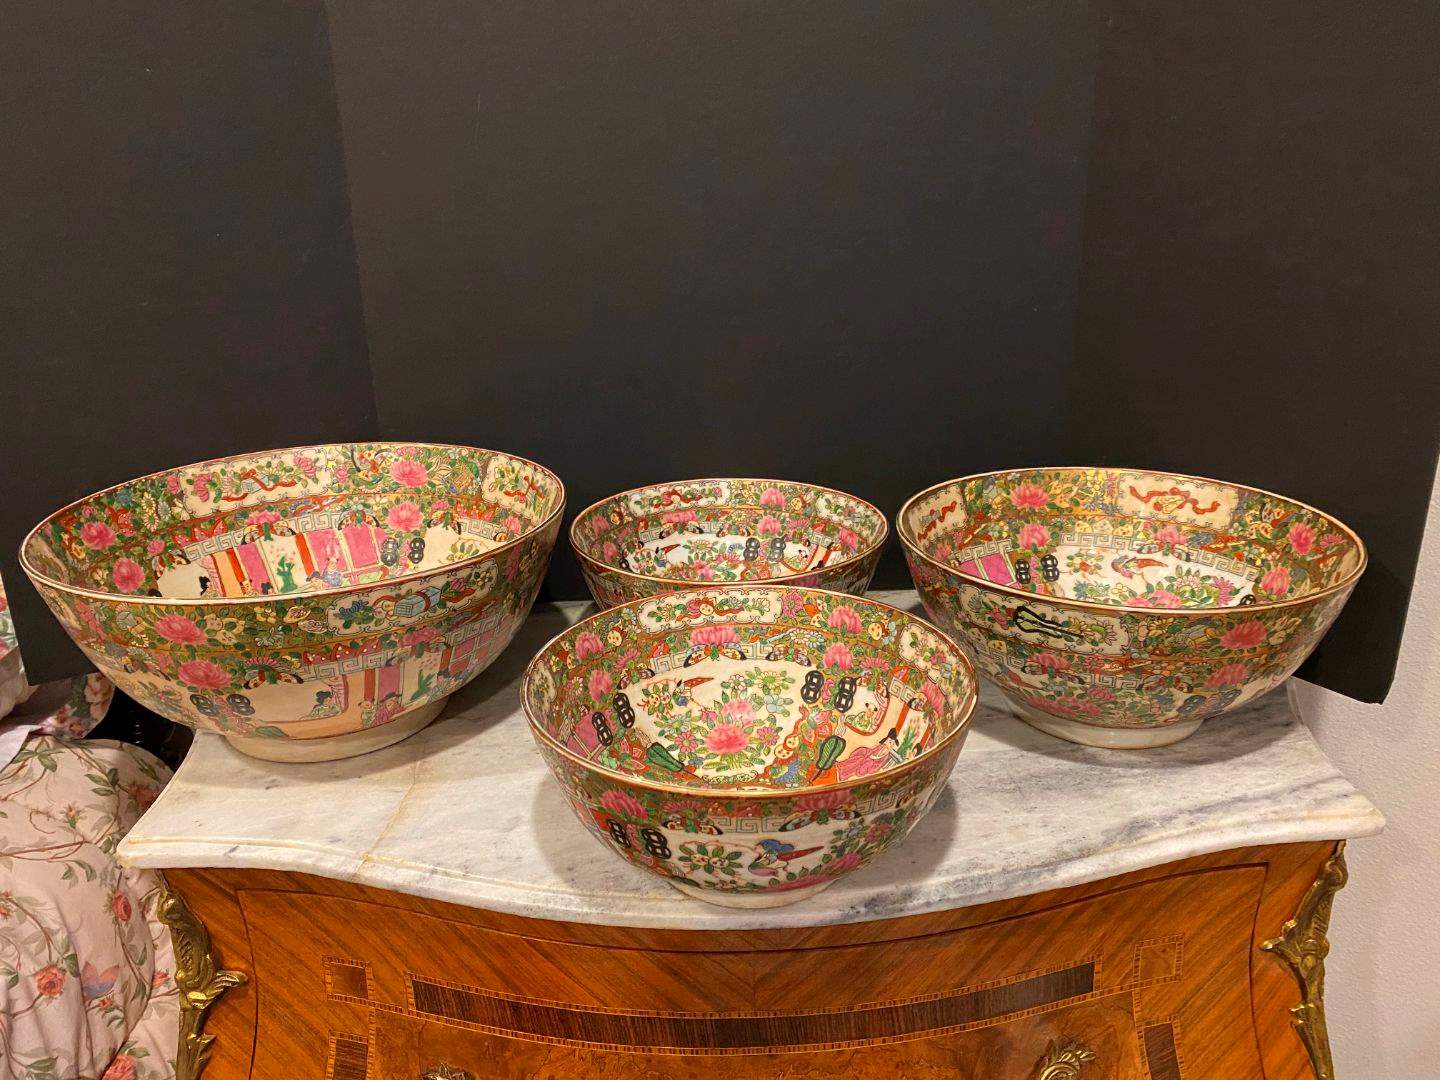 Lot # 144 - Four Matching Large Vintage/Antique Hand Painted Asian Bowls of Various Sizes (main image)